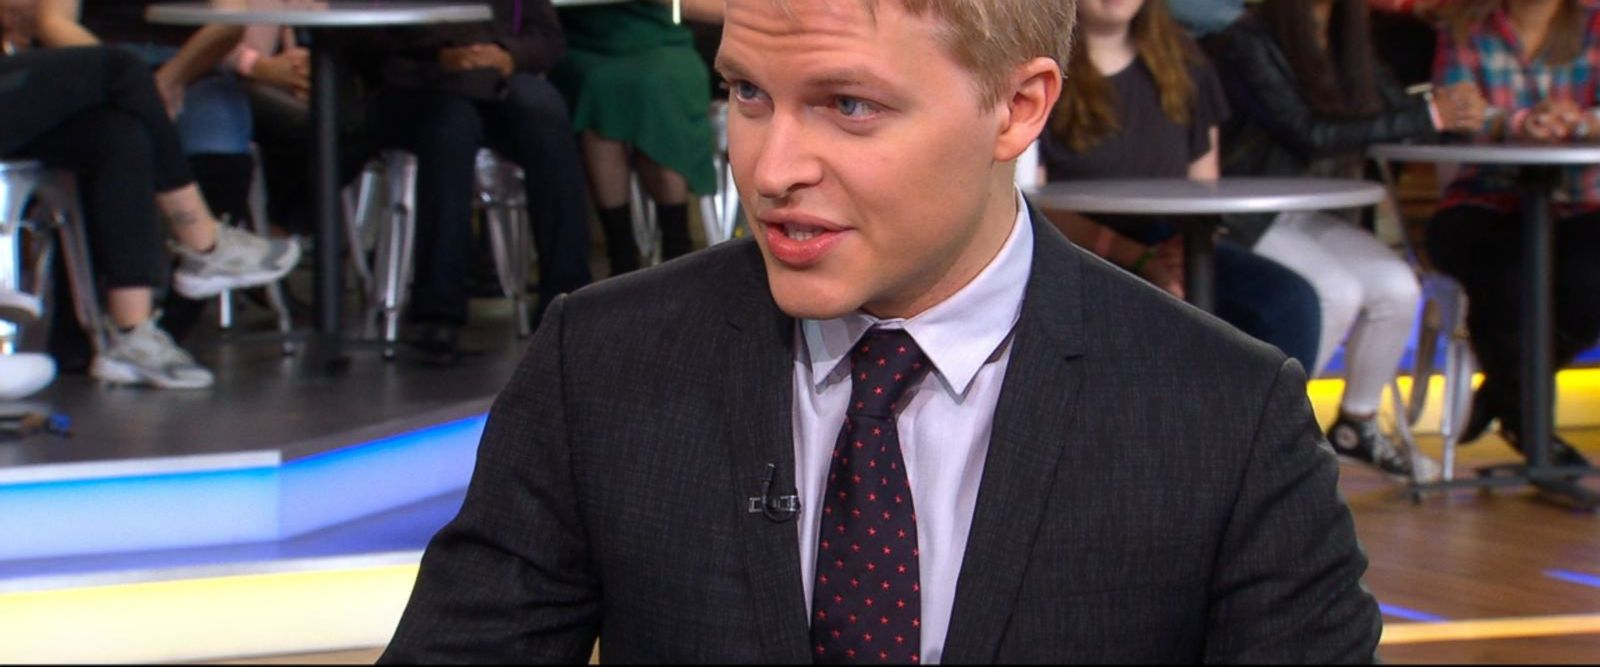 VIDEO: Ronan Farrow opens up about his new book live on 'GMA'